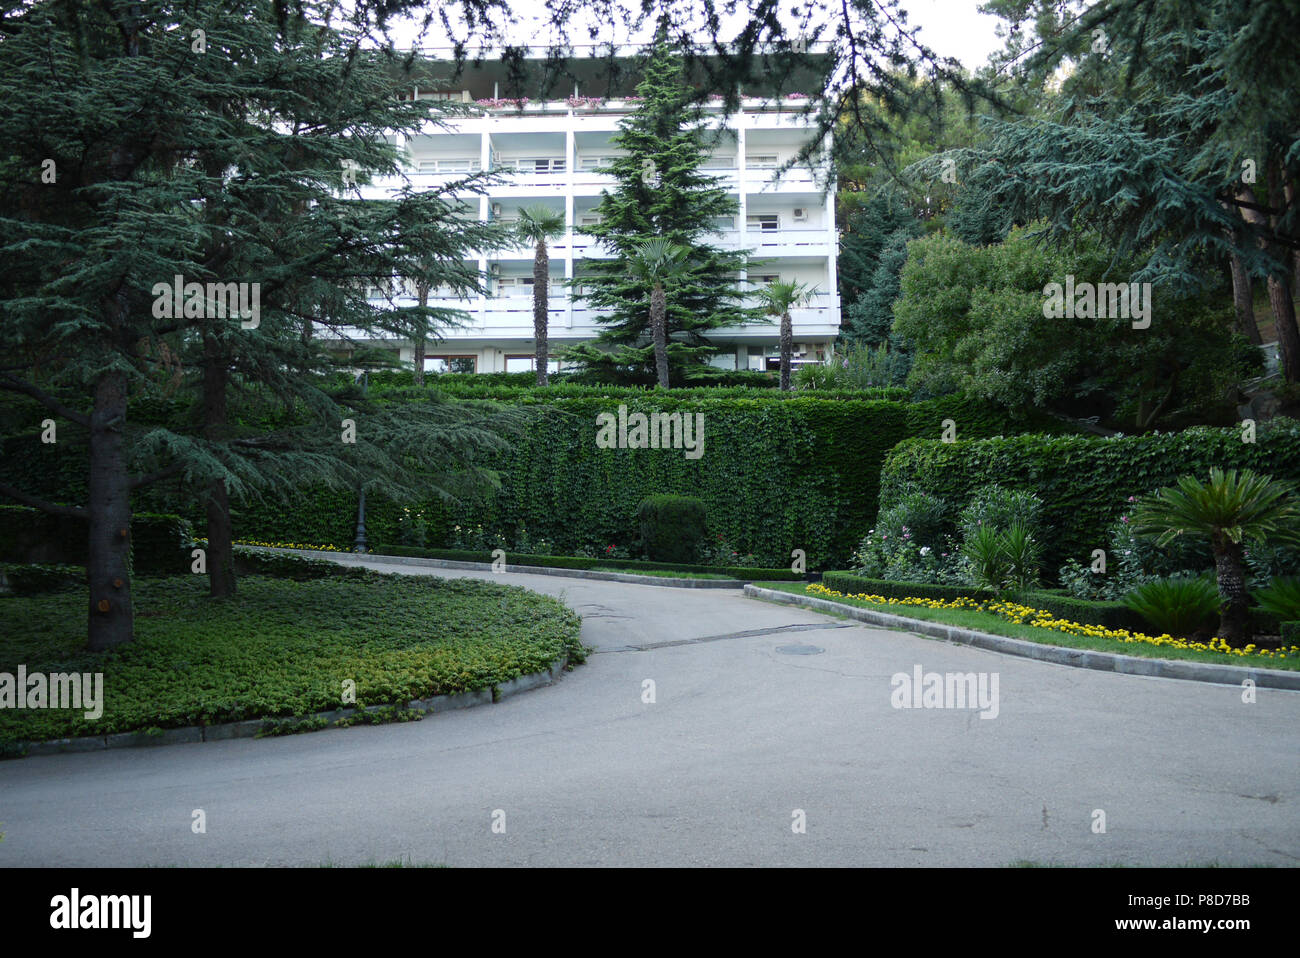 Asphalt road among the green grass of the tall clipped bushes of growing palm trees on the background of a sanatorium building with white walls and ba Stock Photo